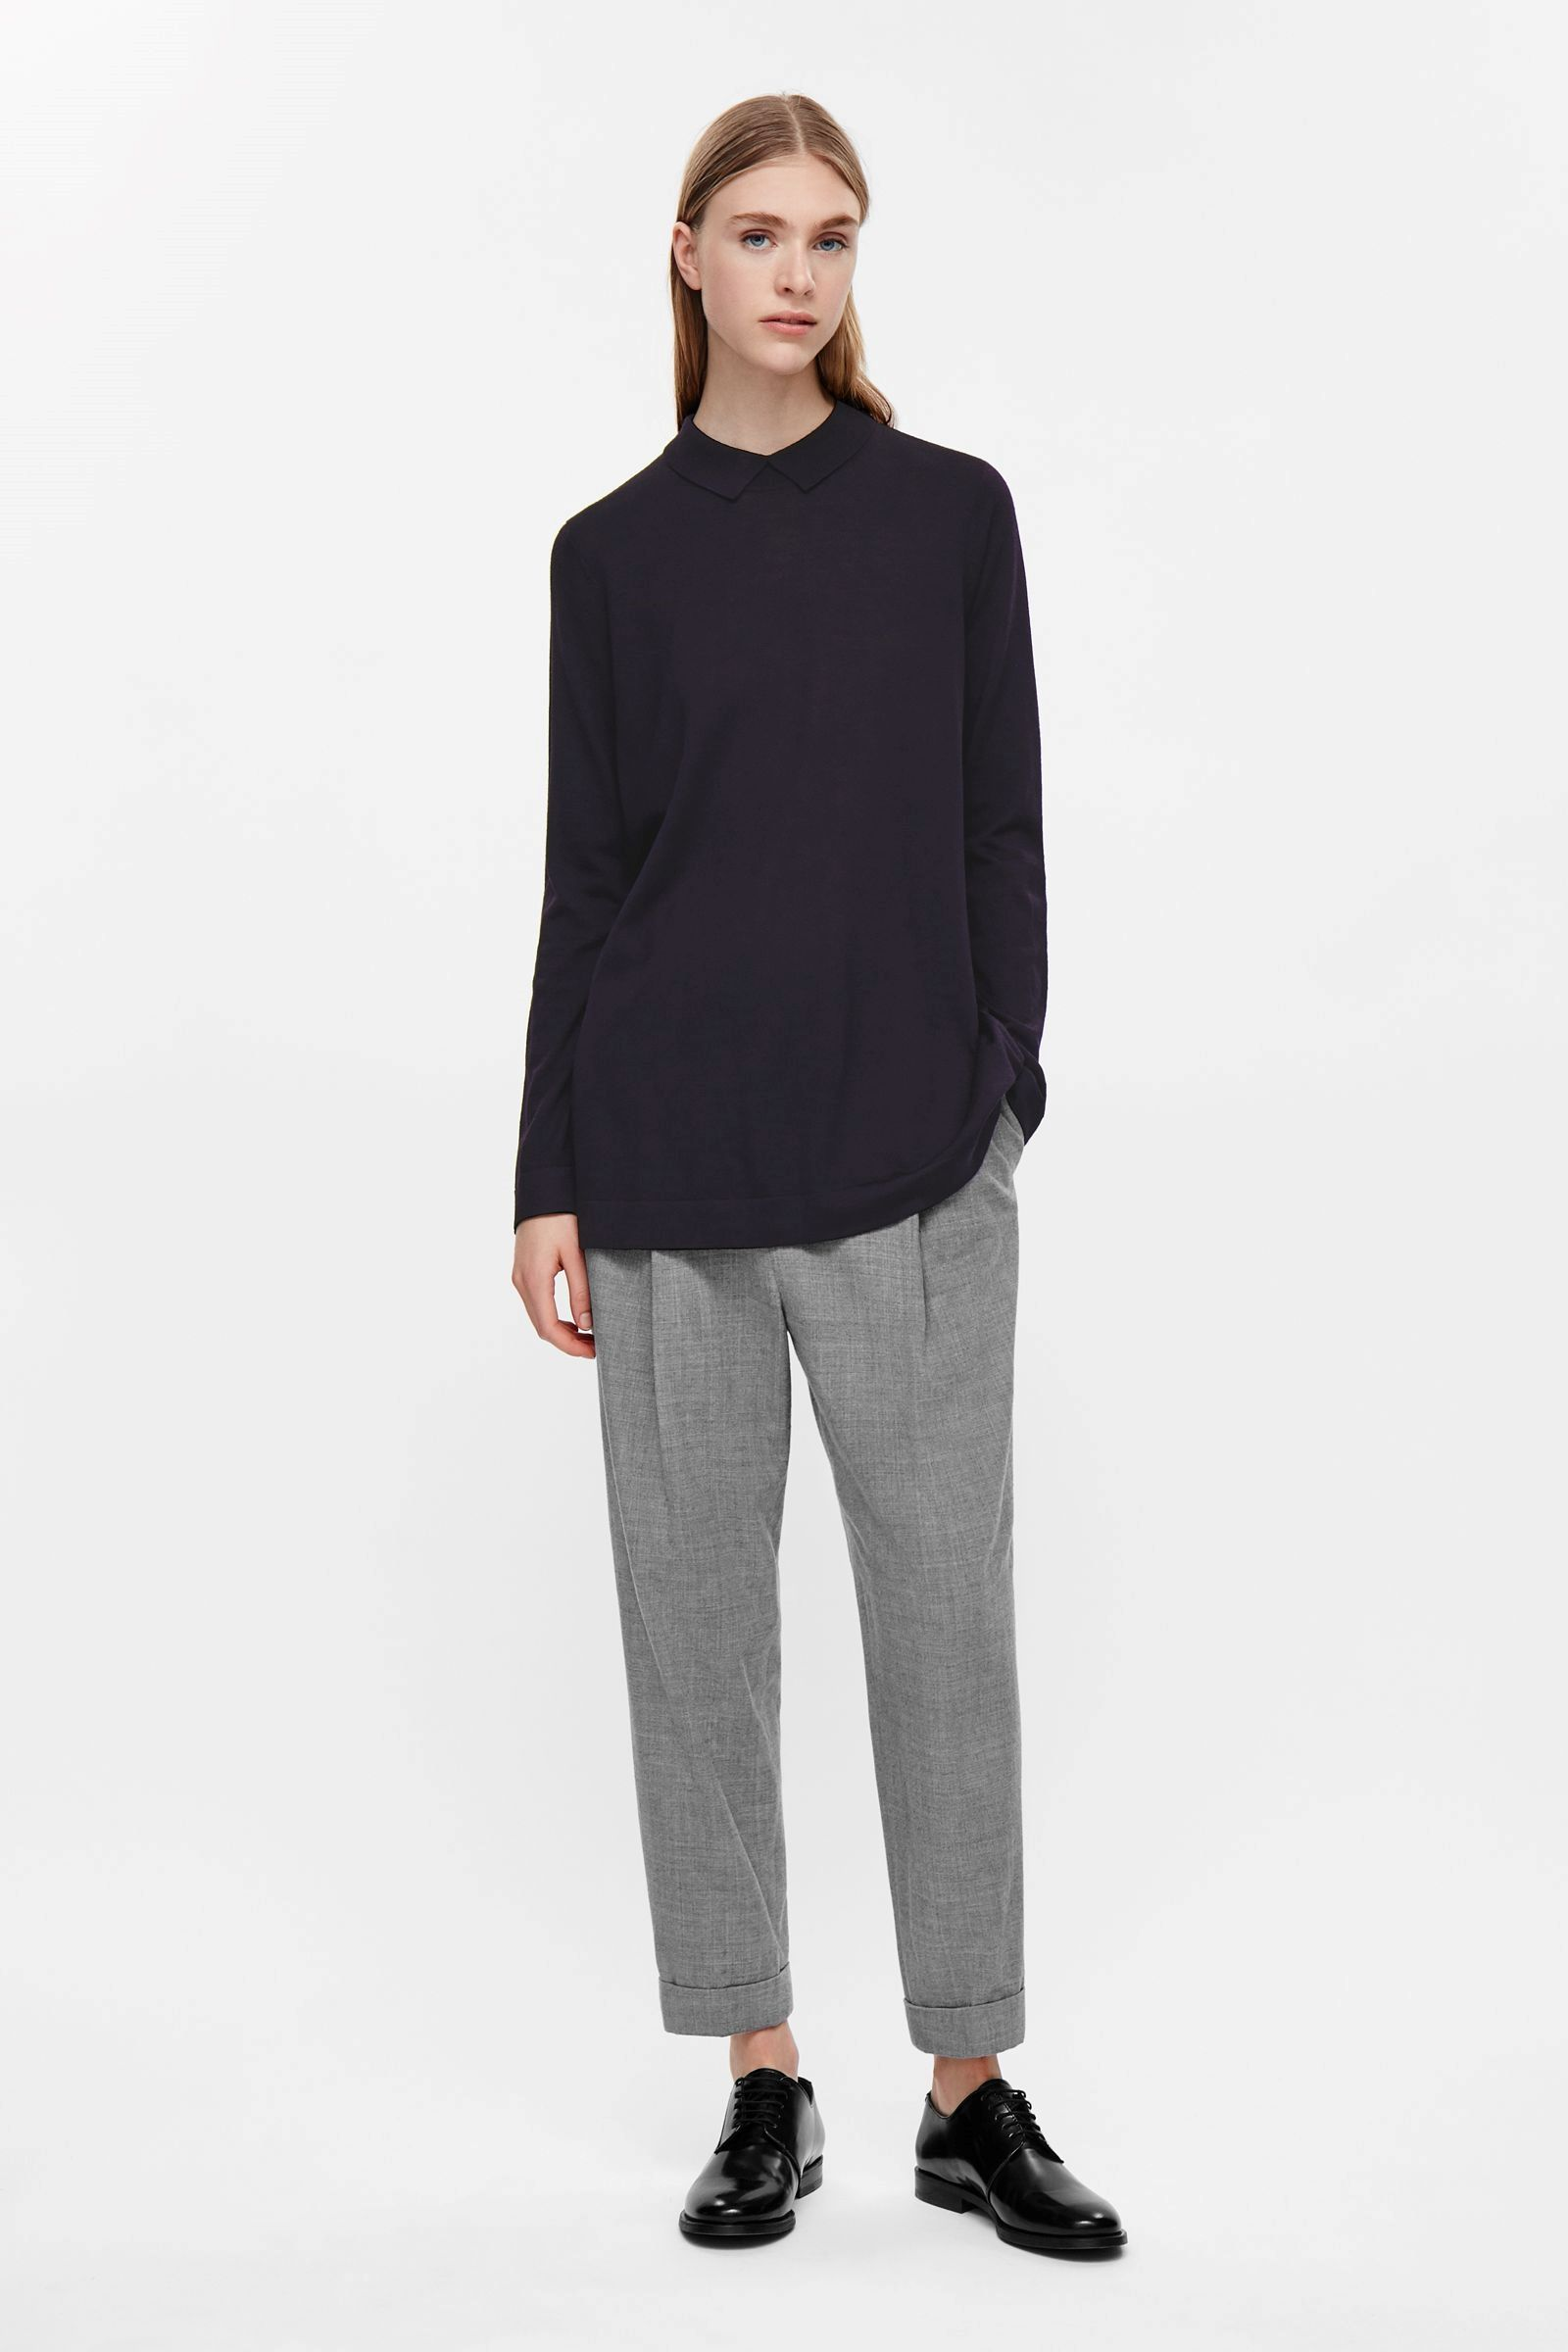 COS image 4 of Ribbed collar tunic in Navy in 2019